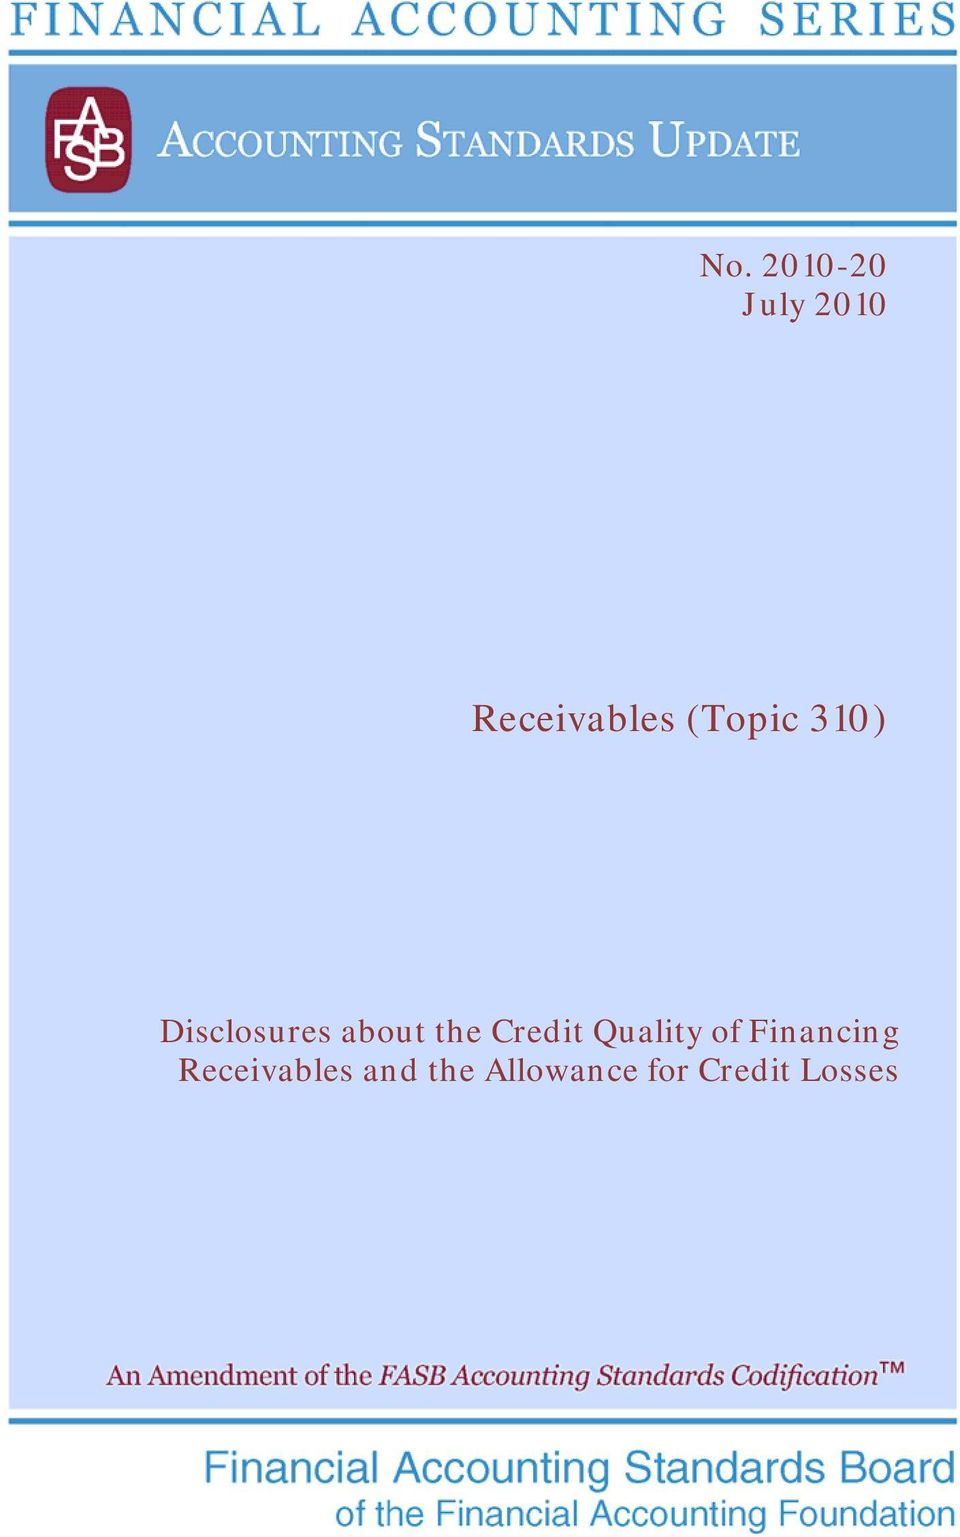 Credit Quality of Receivables and